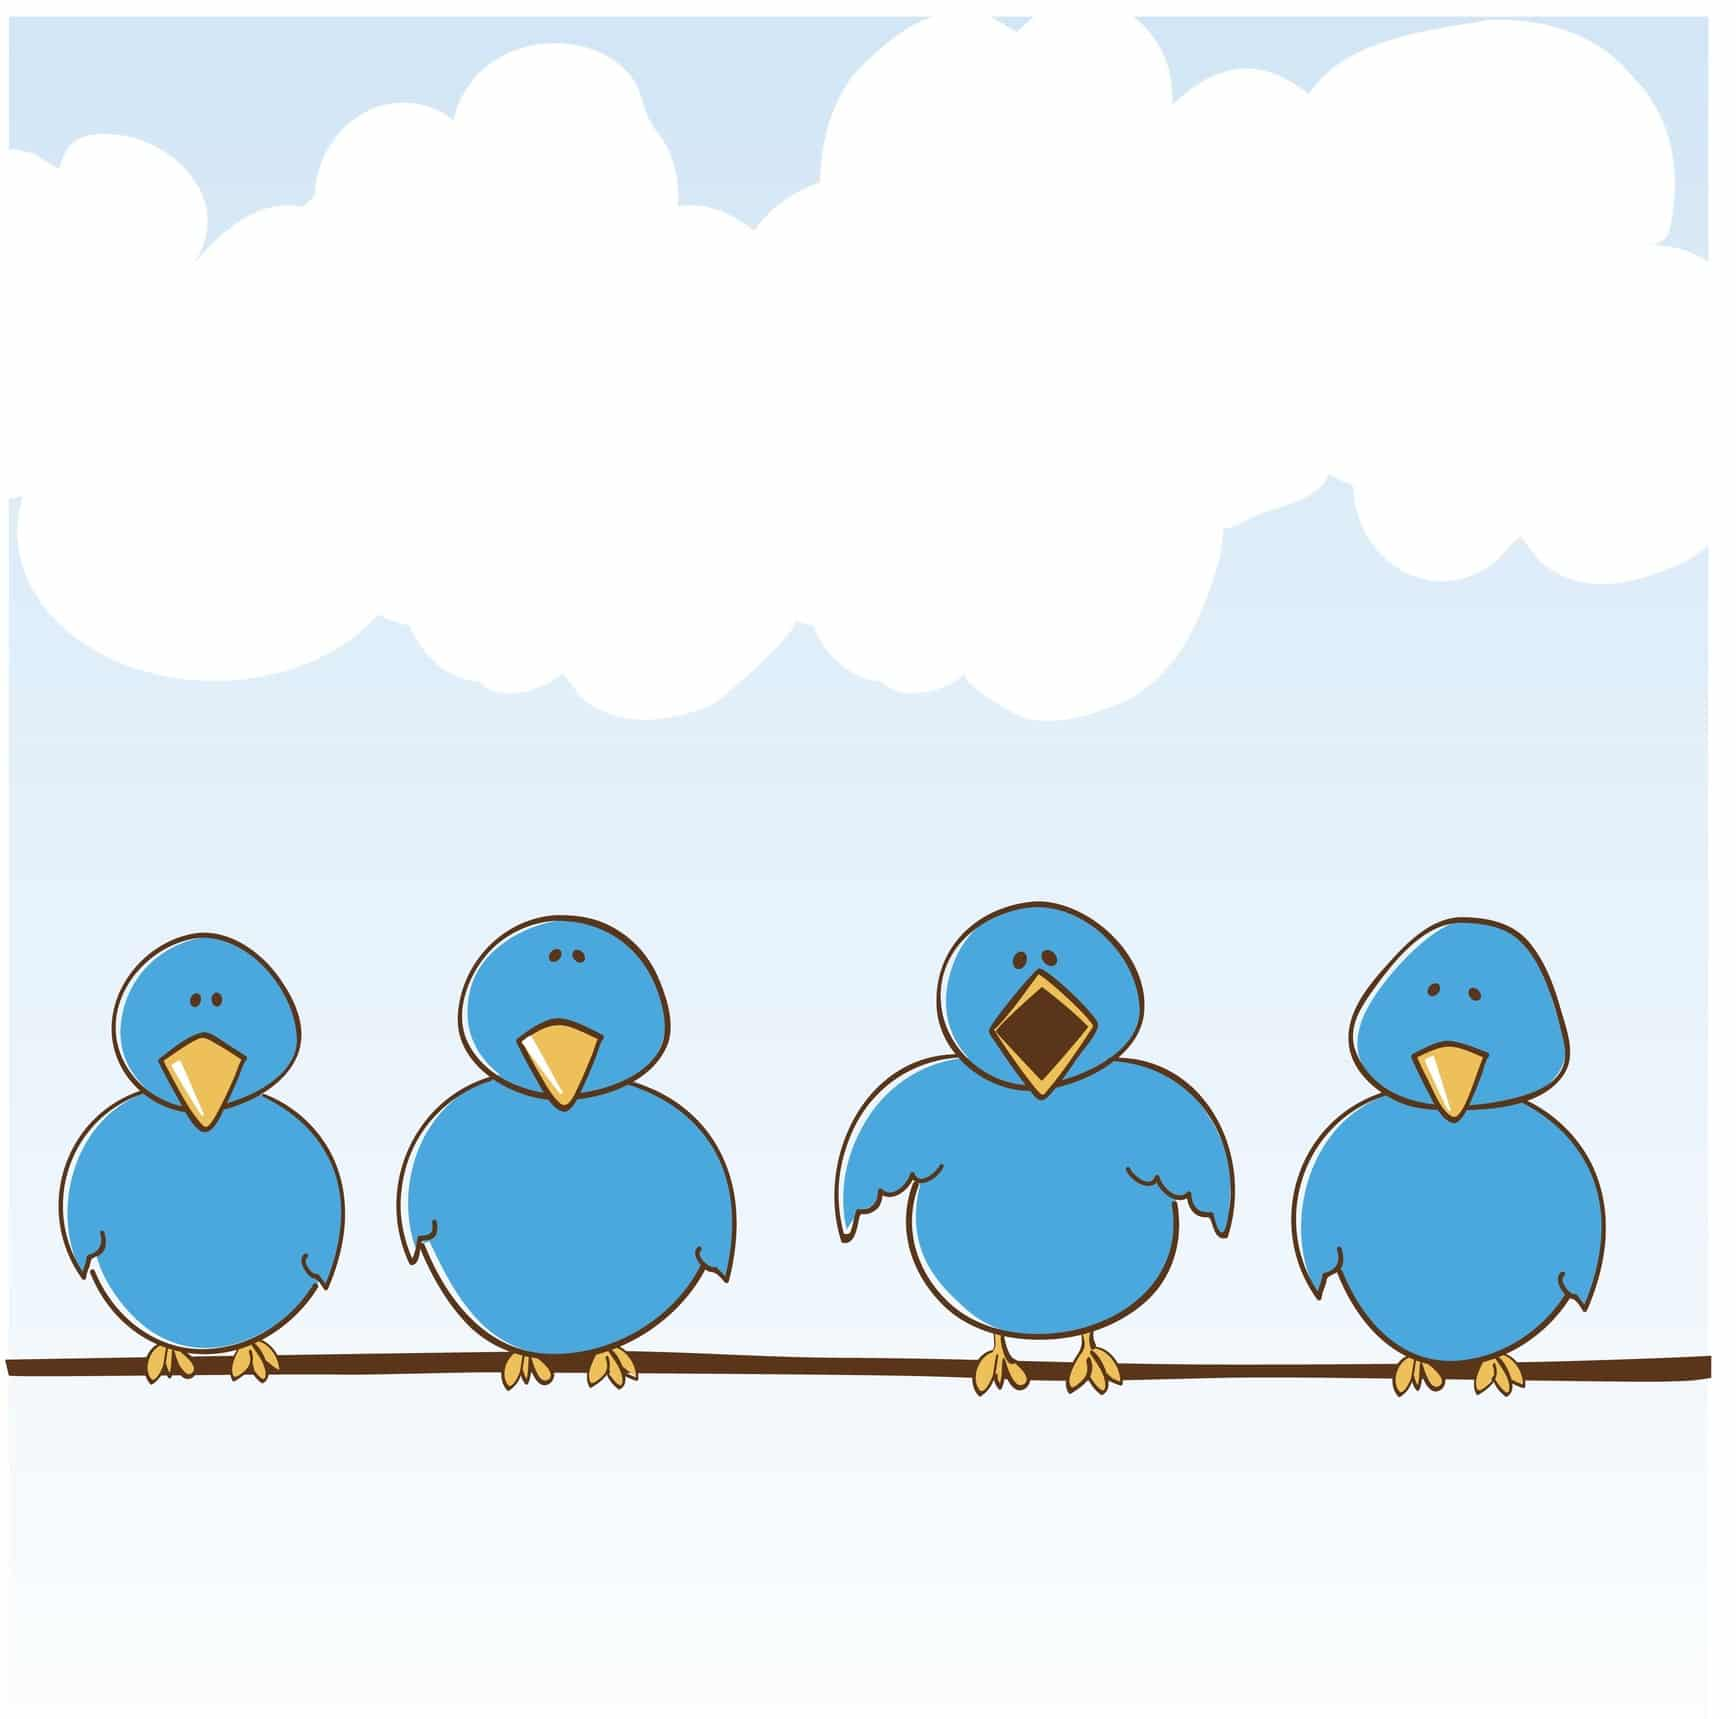 Celebrate ♥ Day on Twitter